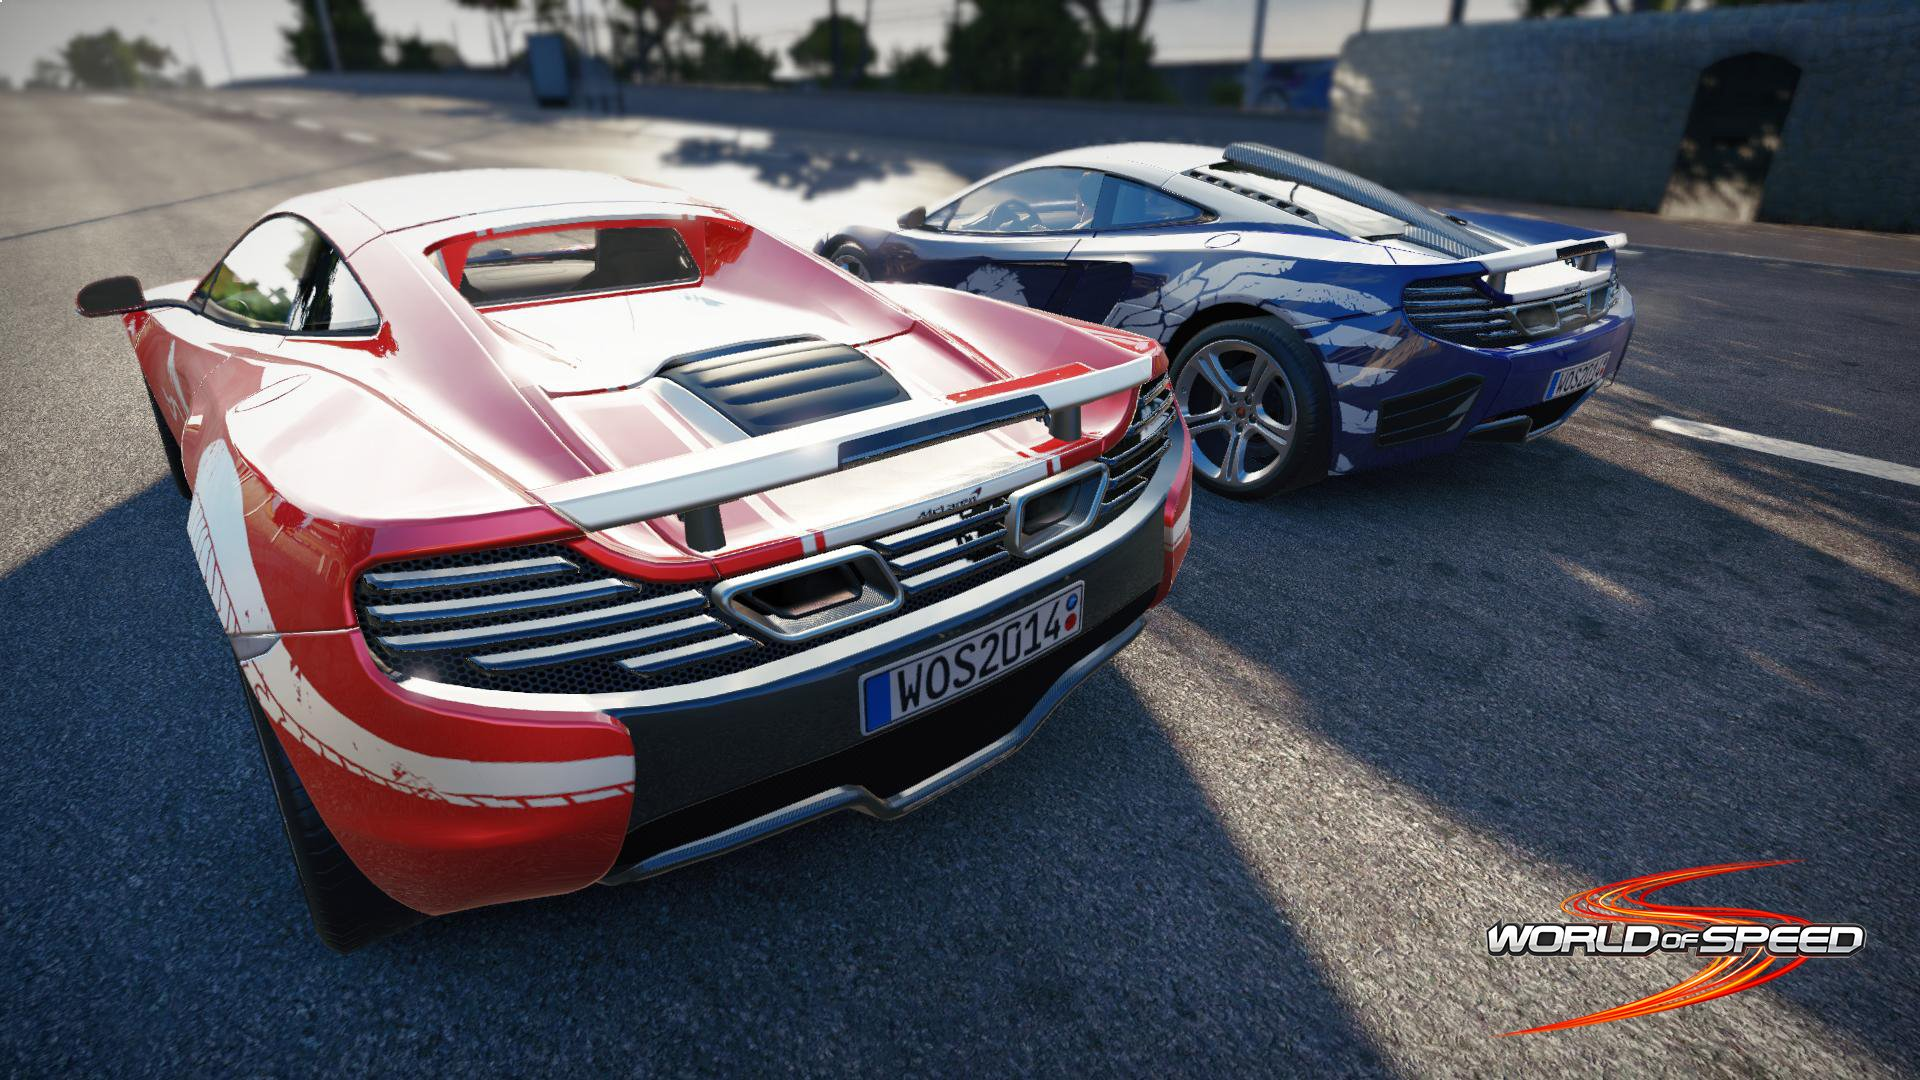 World of Speed E3 2014 Impressions – Video and Images